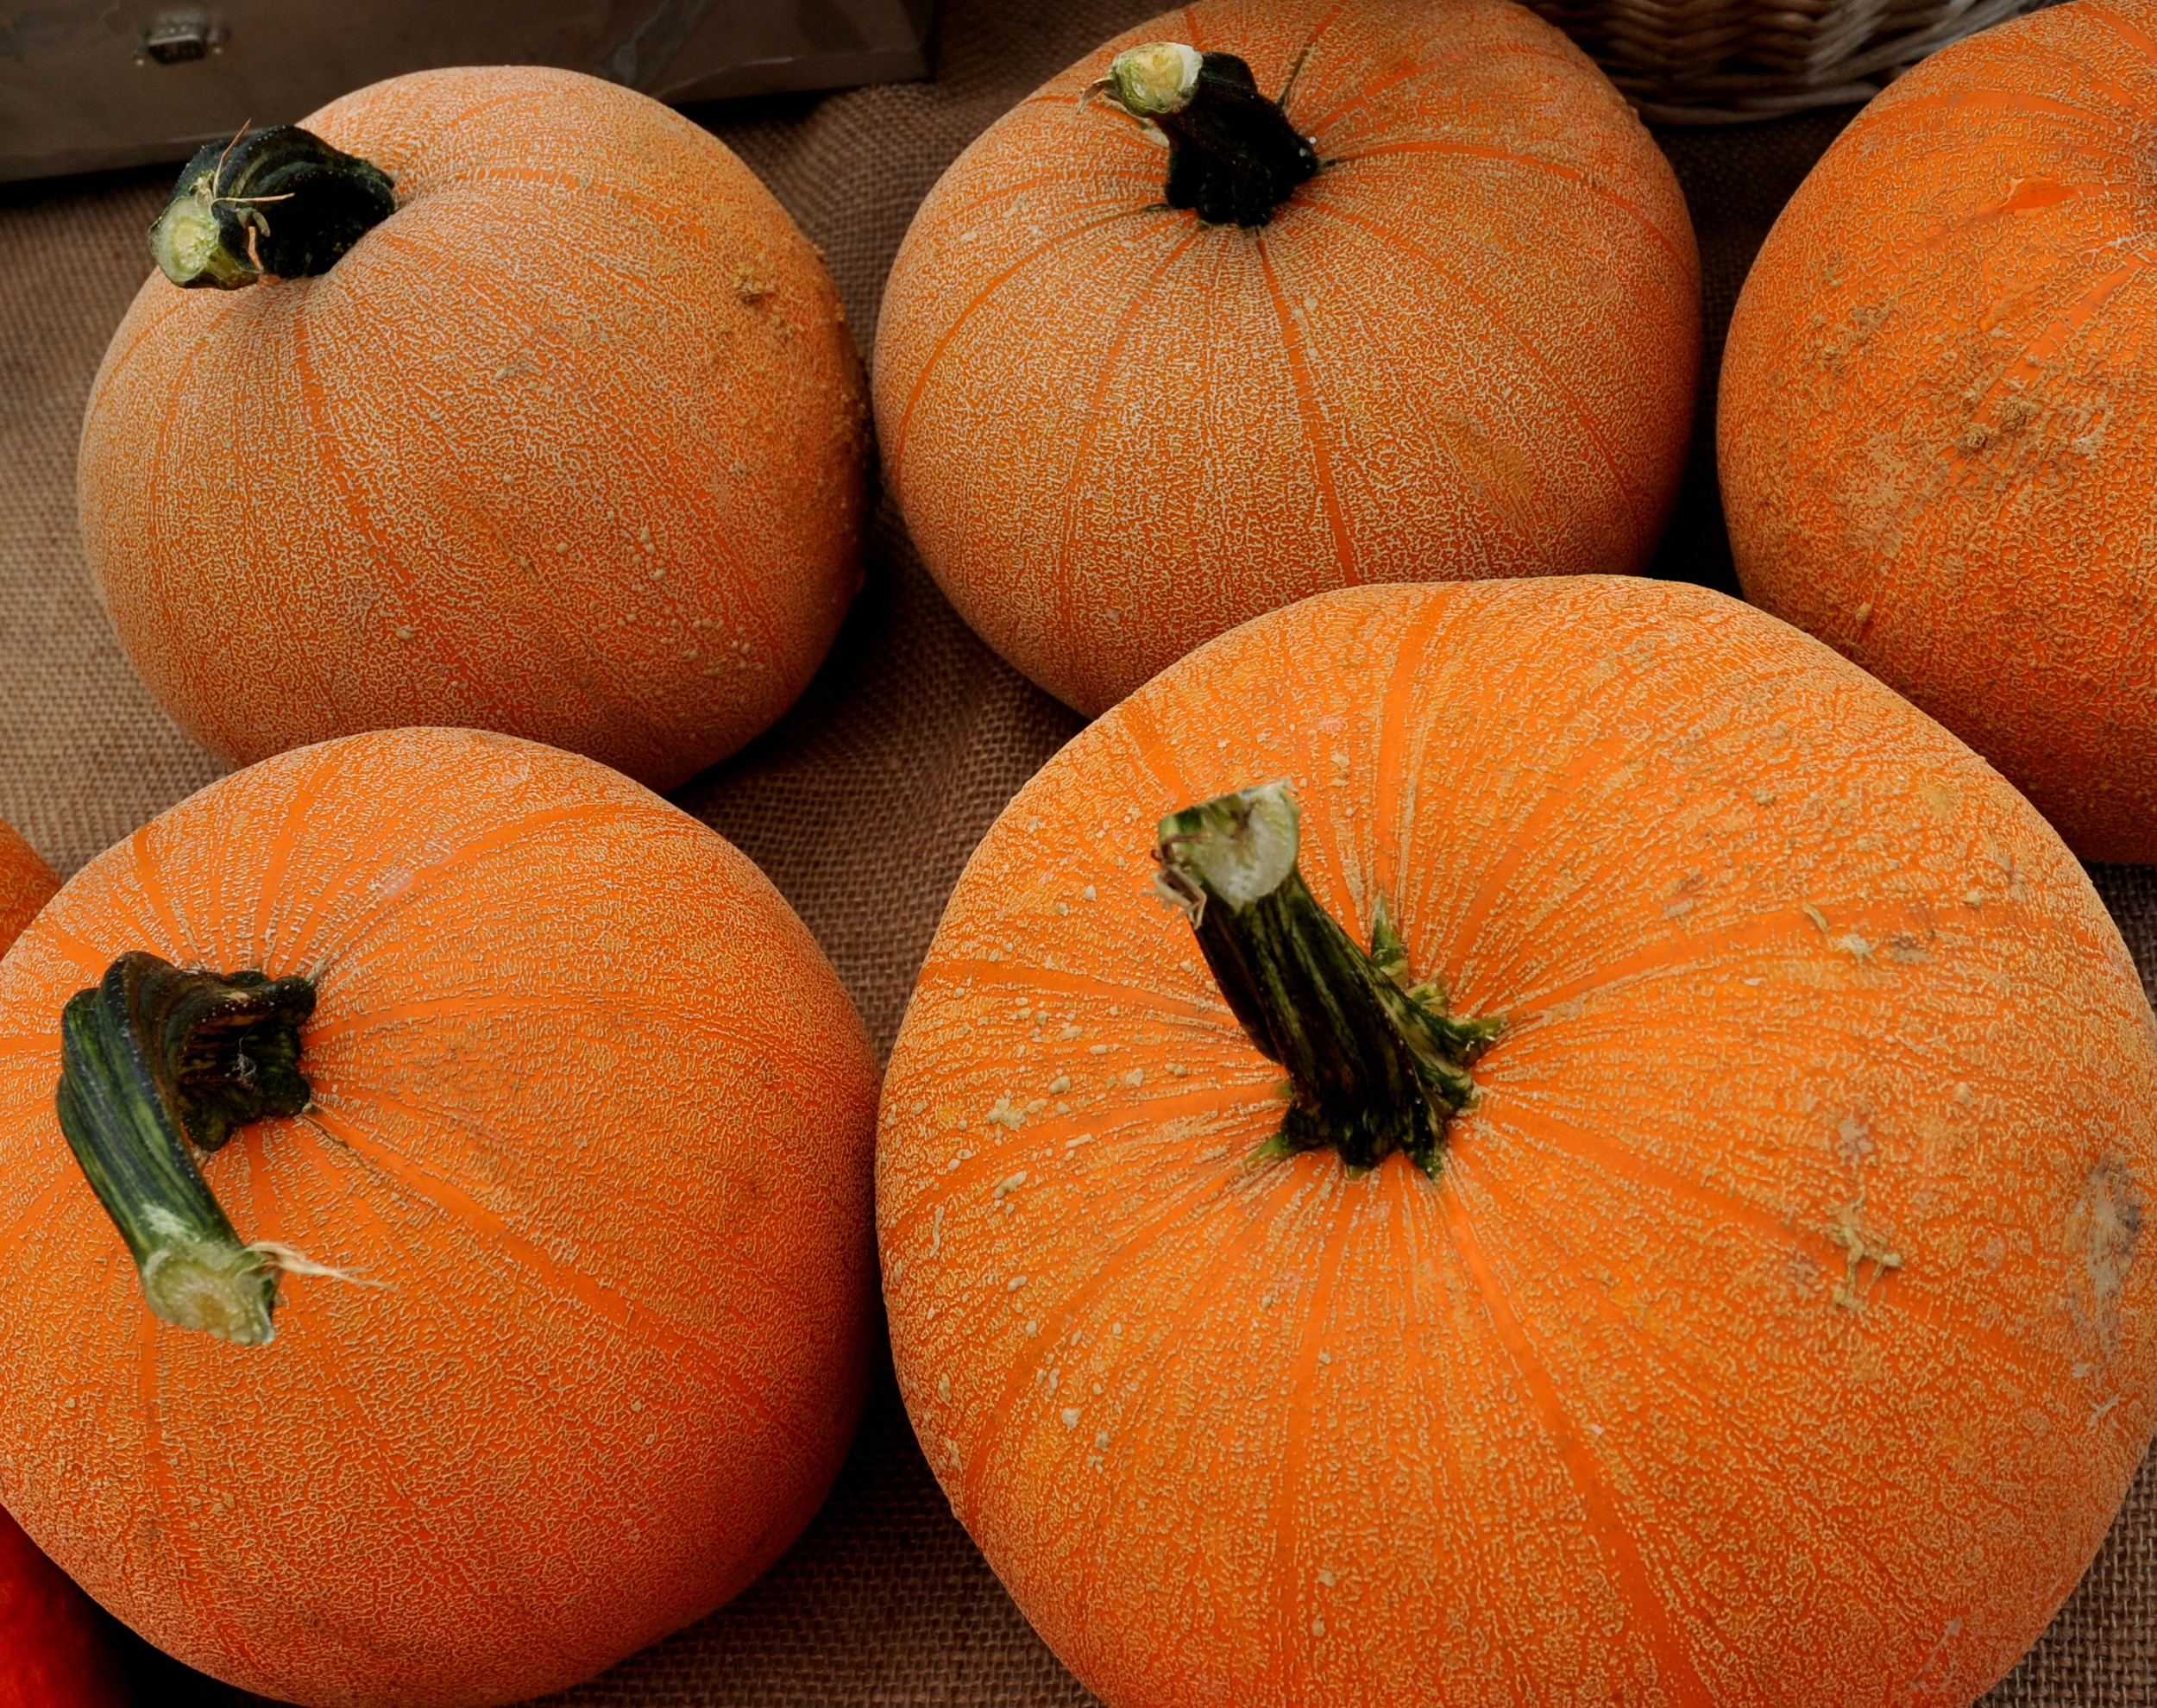 Winter Luxury pumpkins from One Leaf Farm. Photo copyright 2013 by Zachary D. Lyons.